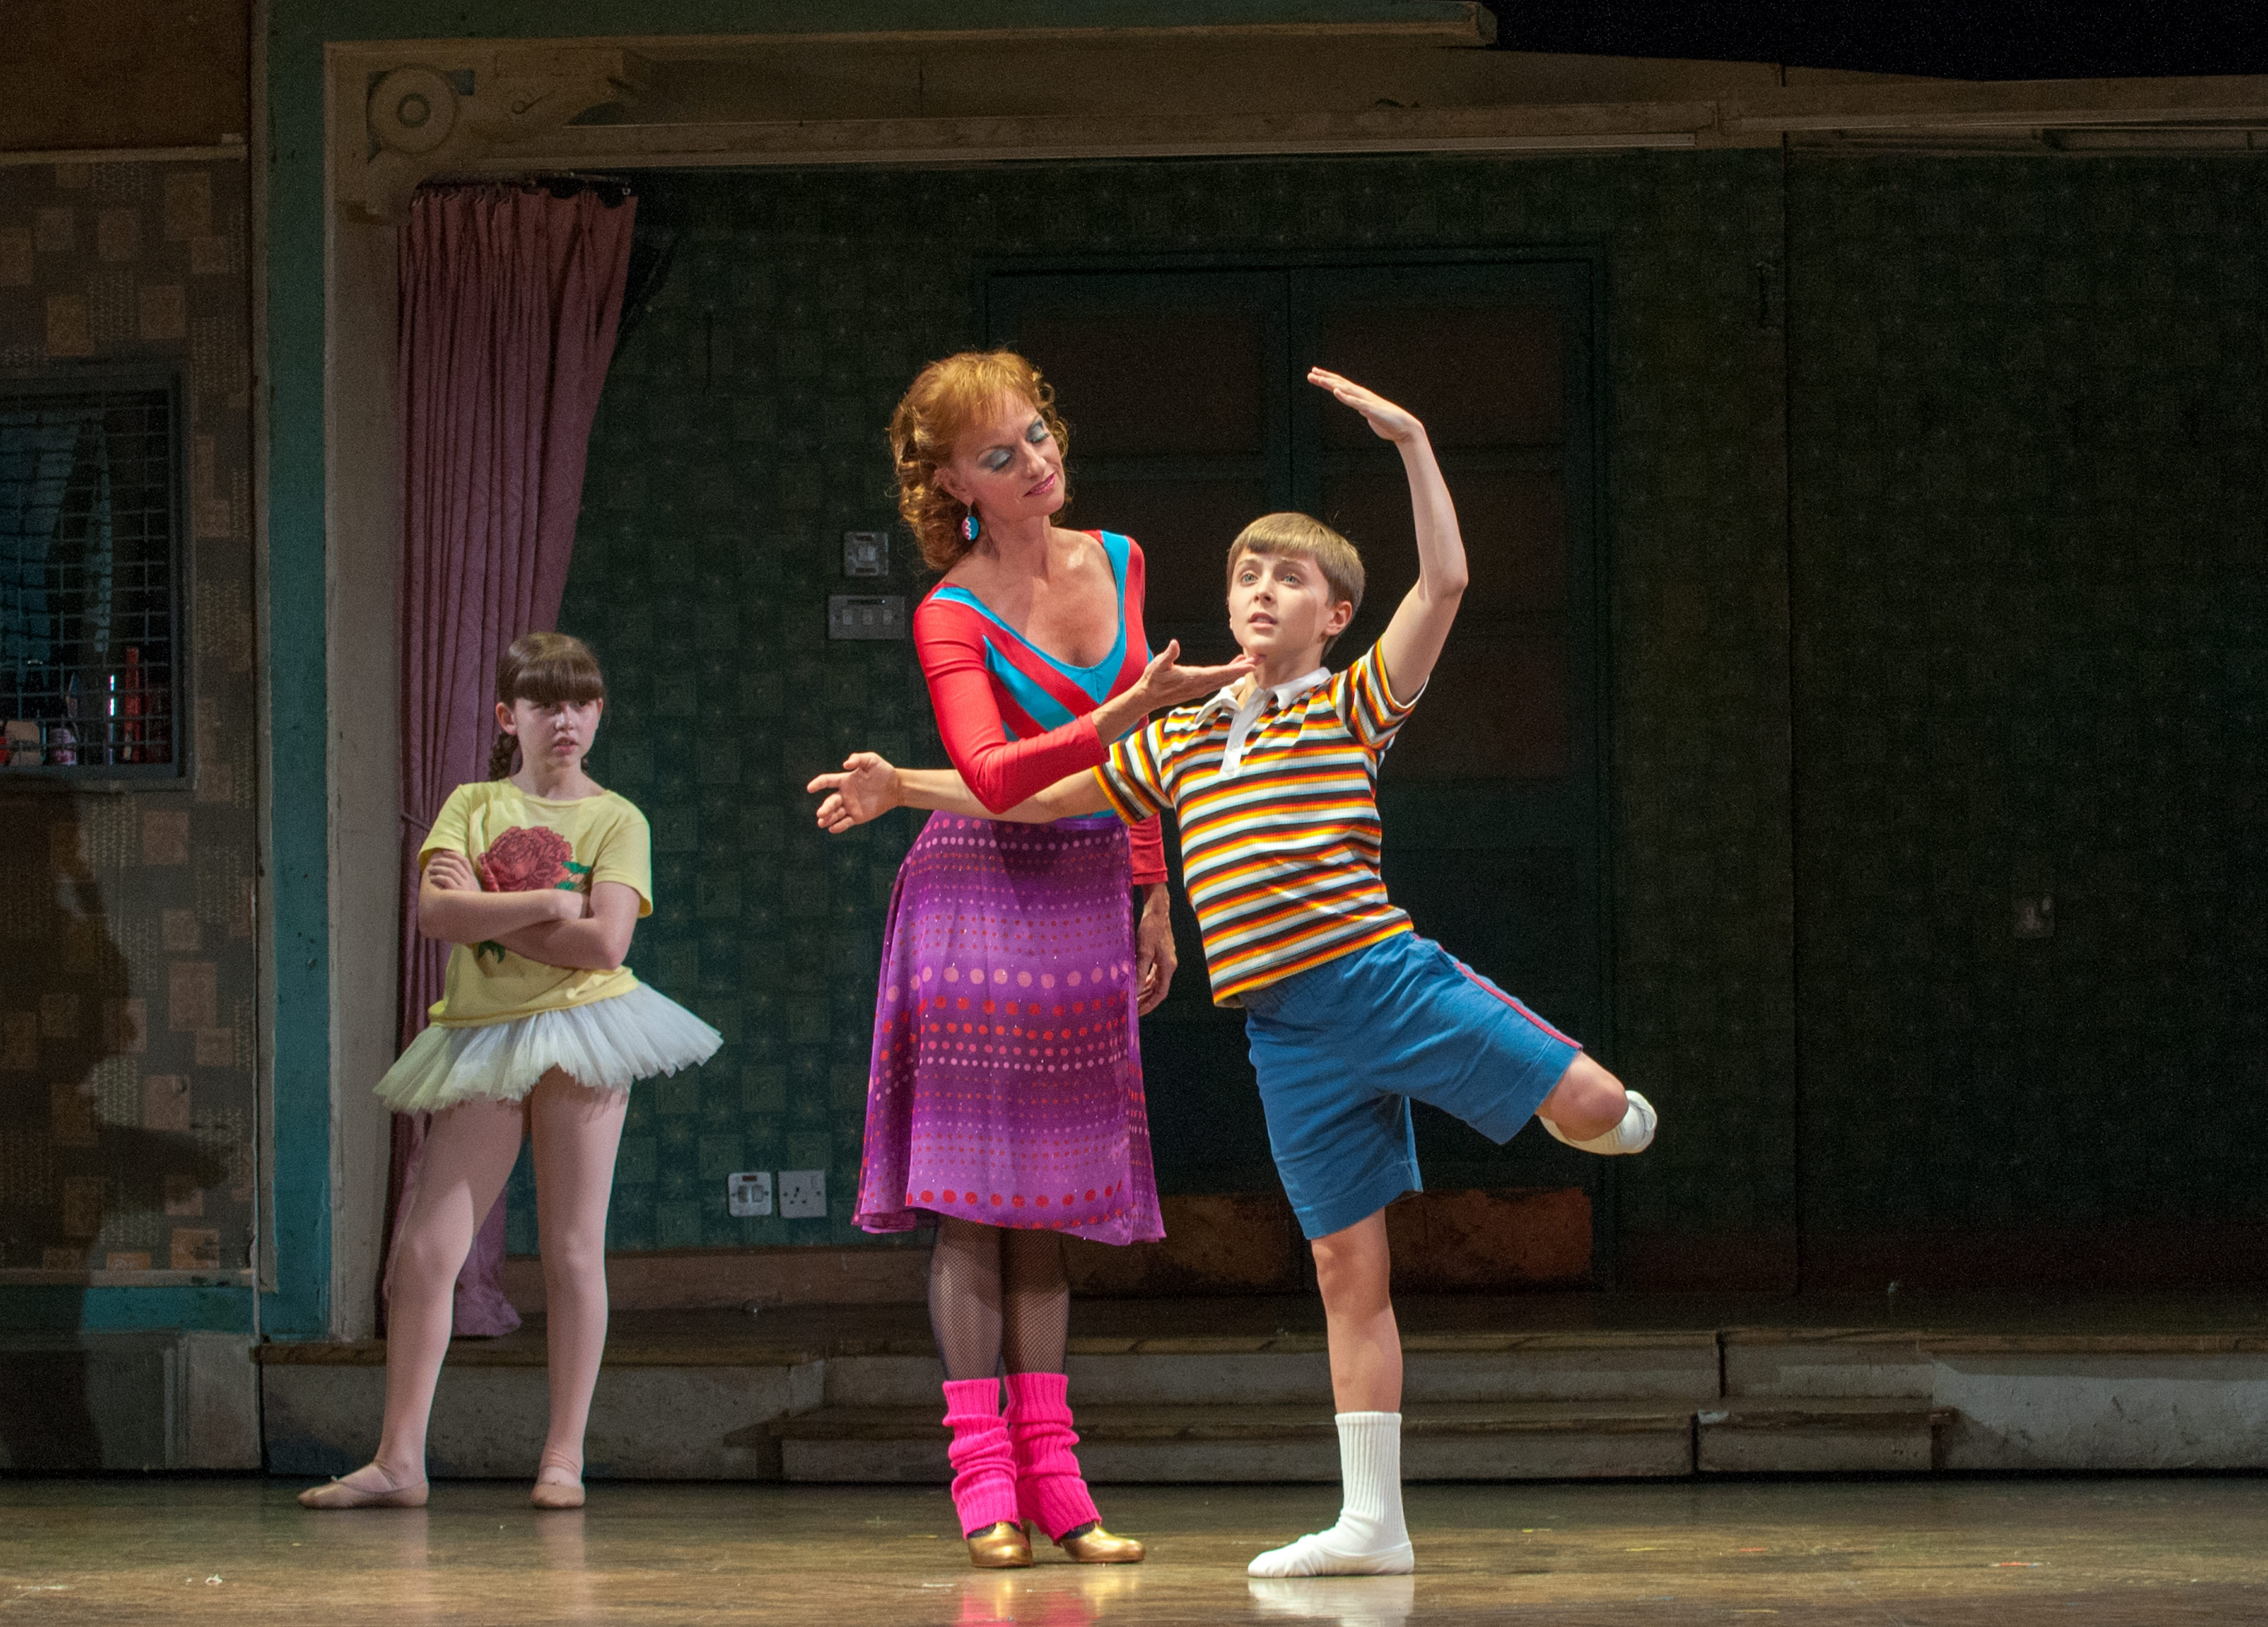 Noah Parets is one of four boys starring in the touring production of 'Billy Elliot,' coming to Shea's Performing Arts Center on Tuesday for seven performances.